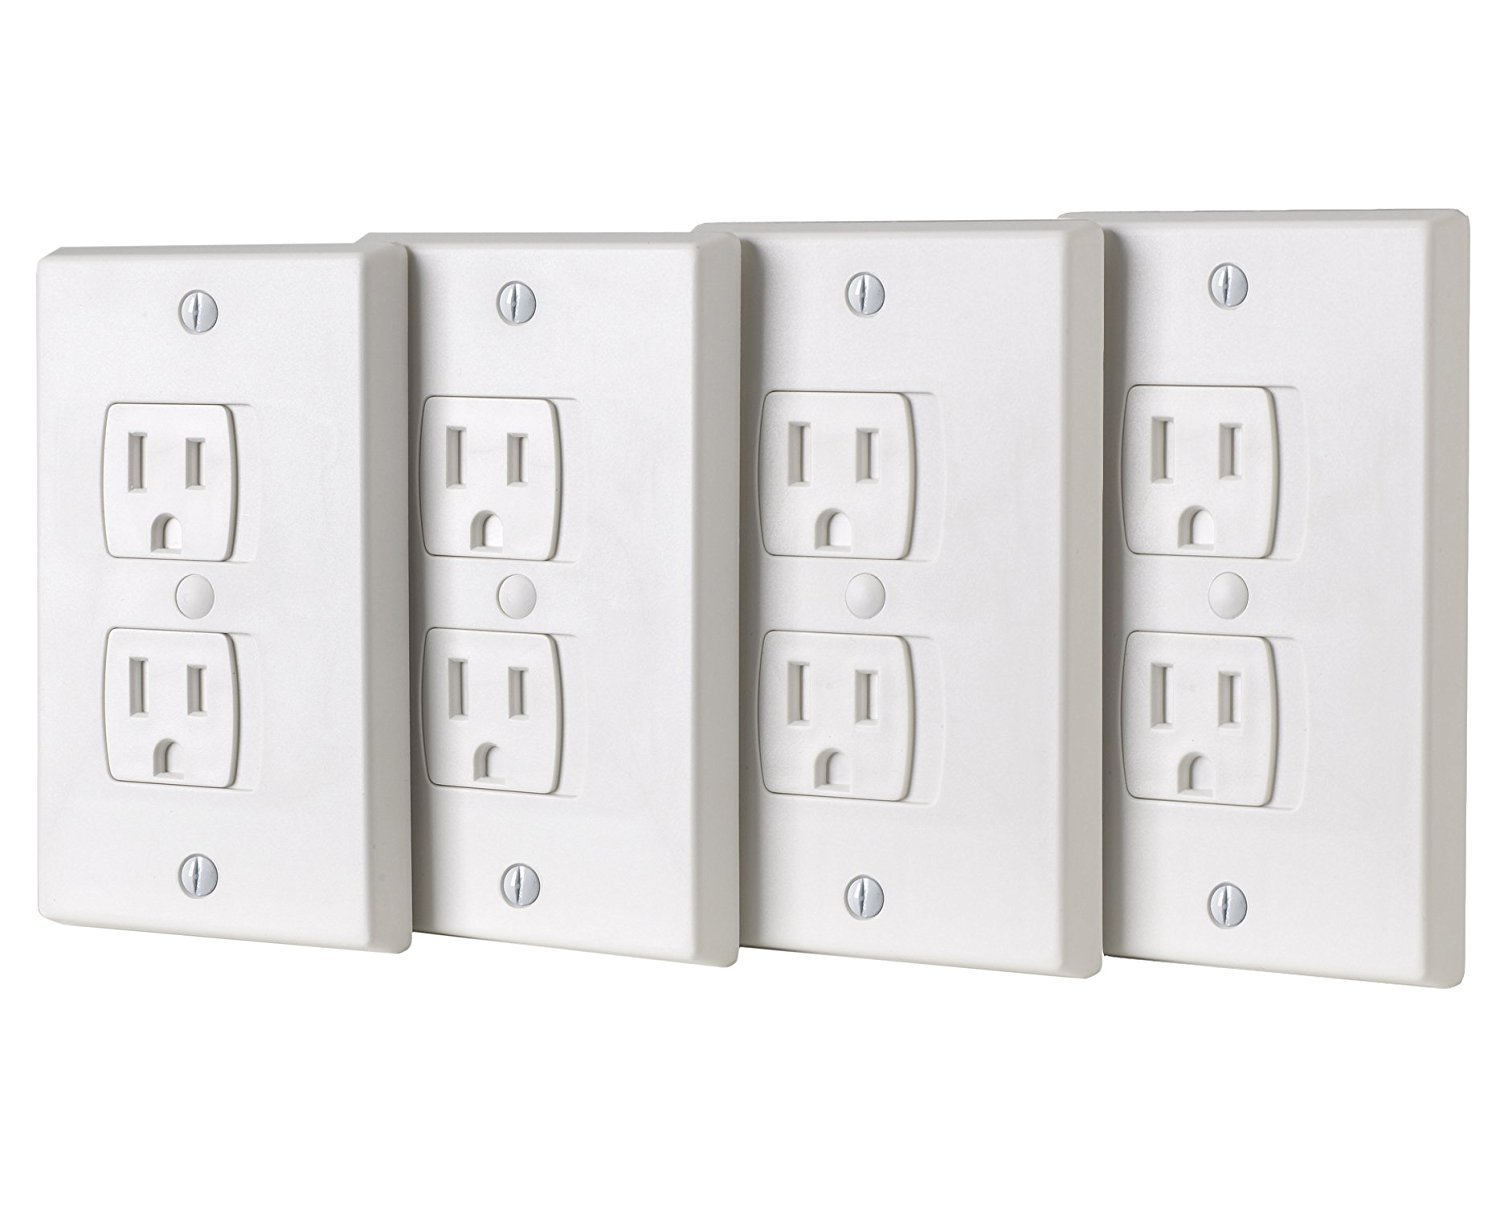 Ziz Home Self-Closing Outlet Covers | 4 Pack | White | Universal Electric Outlet Cover - Baby Proof Kit - Child Safety Wall Socket Plug – Durable ABS Plastic - Protection | Proofing | Childproof by Ziz Home (Image #6)